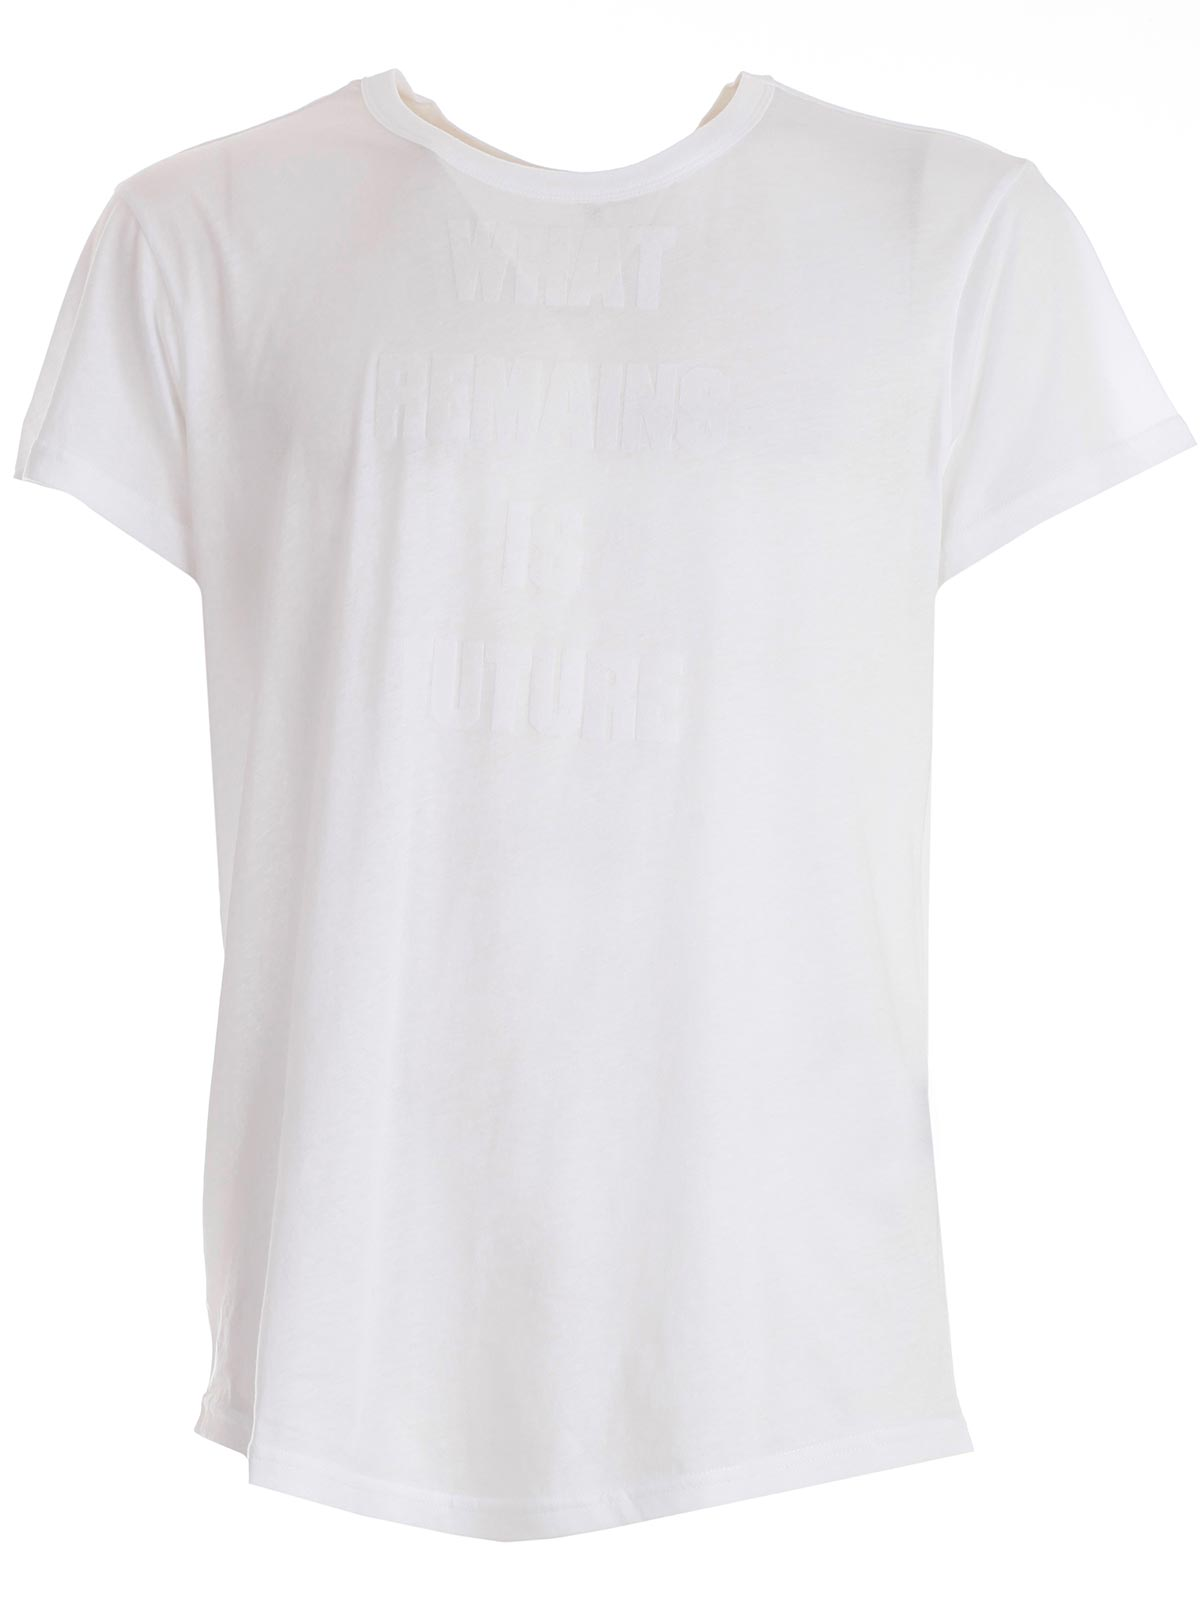 Picture of Ann Demeulemester T- Shirt